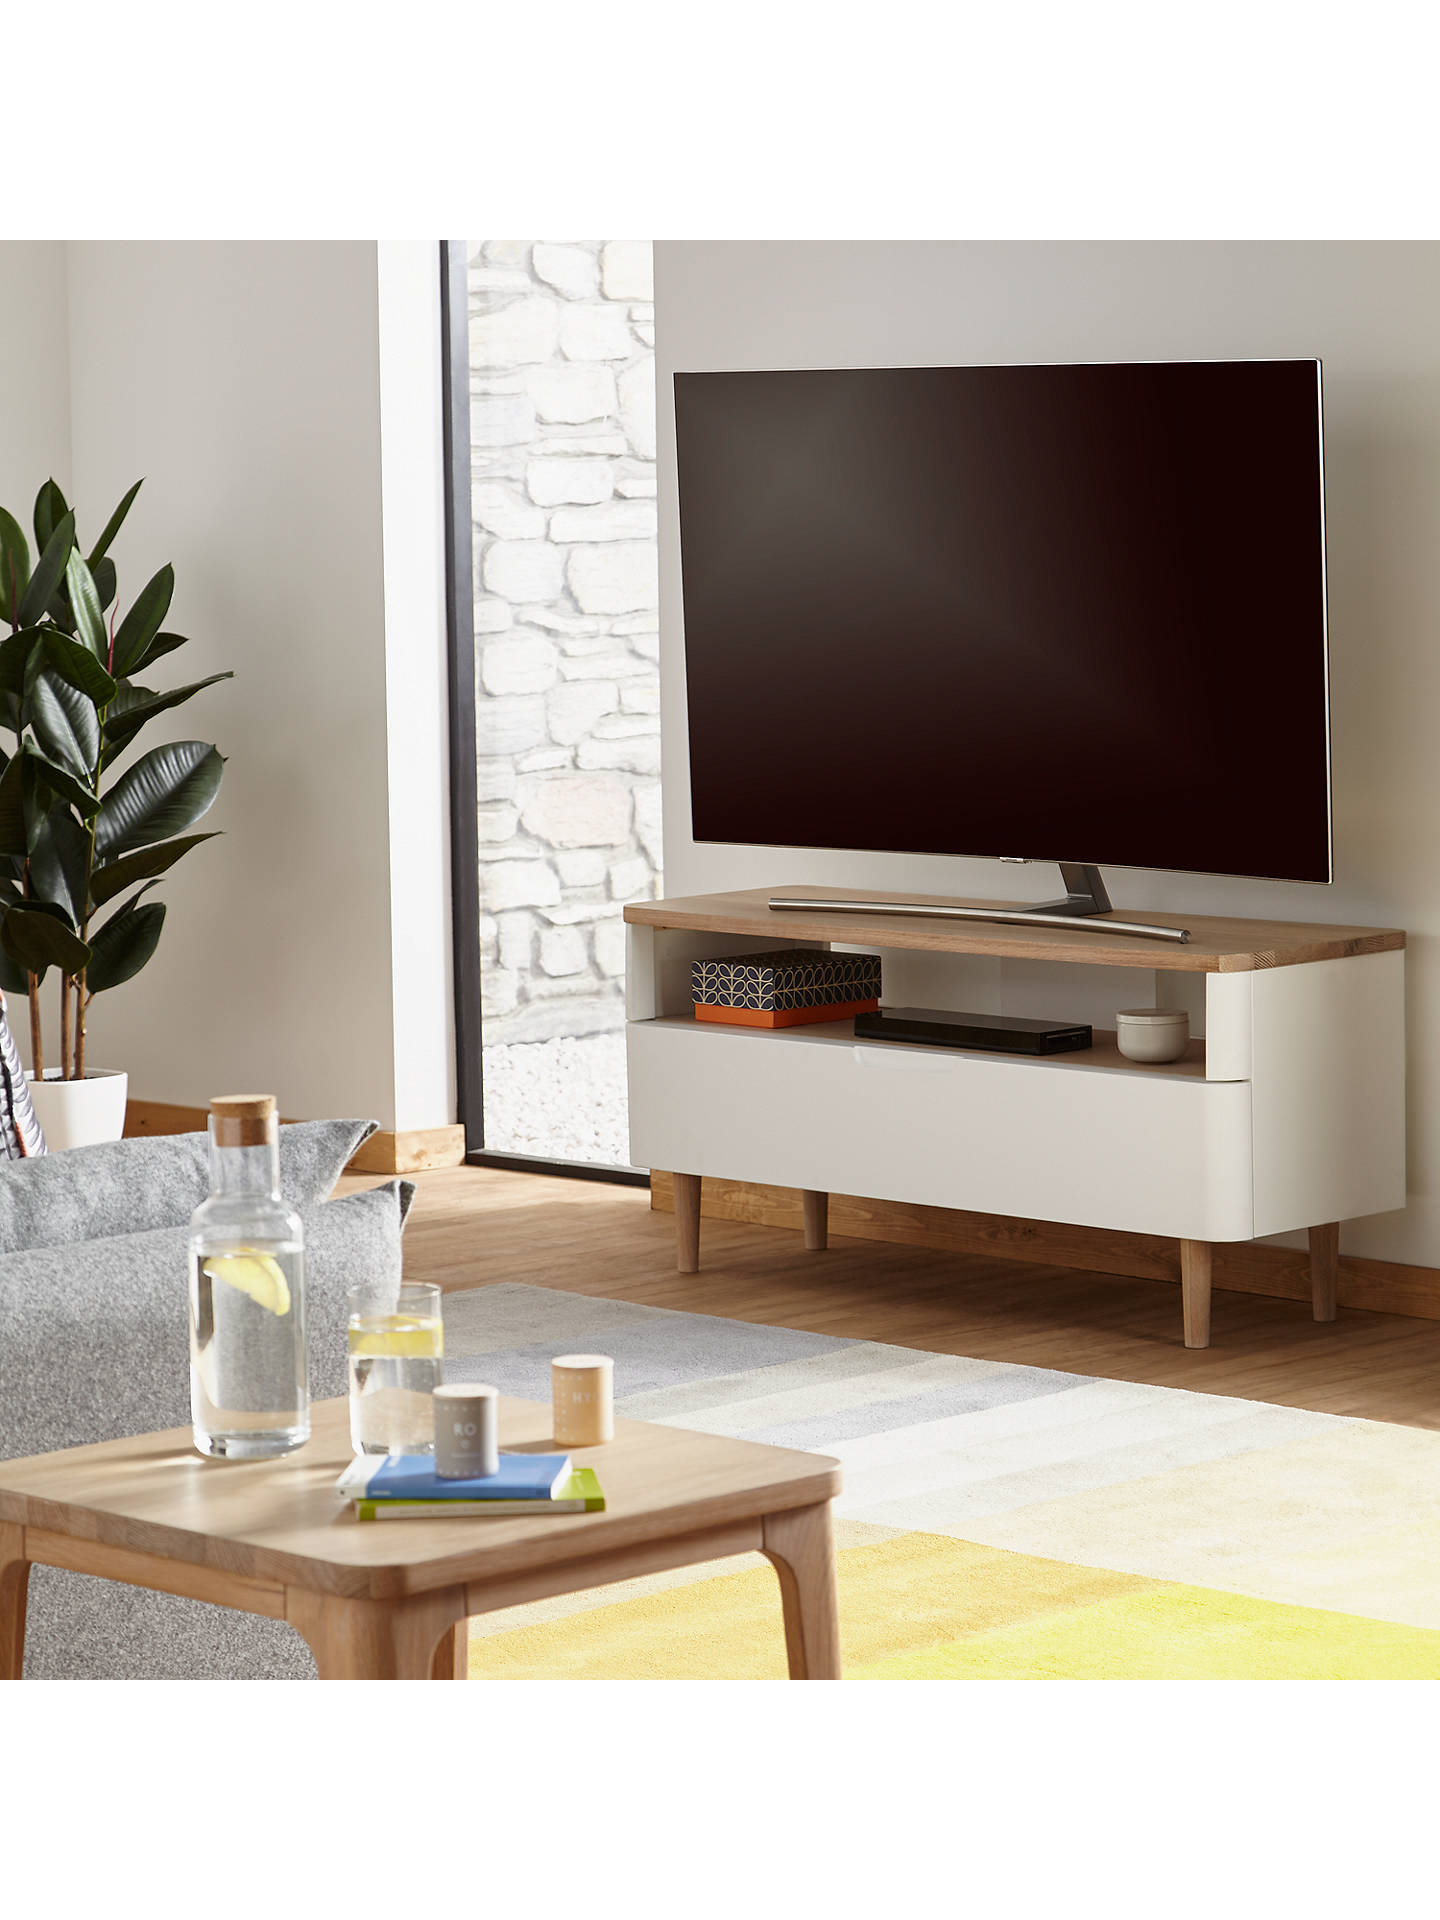 "Ebbe Gehl for John Lewis Mira TV Stand for TVs up to 60"", White/Oak at John  Lewis & Partners"